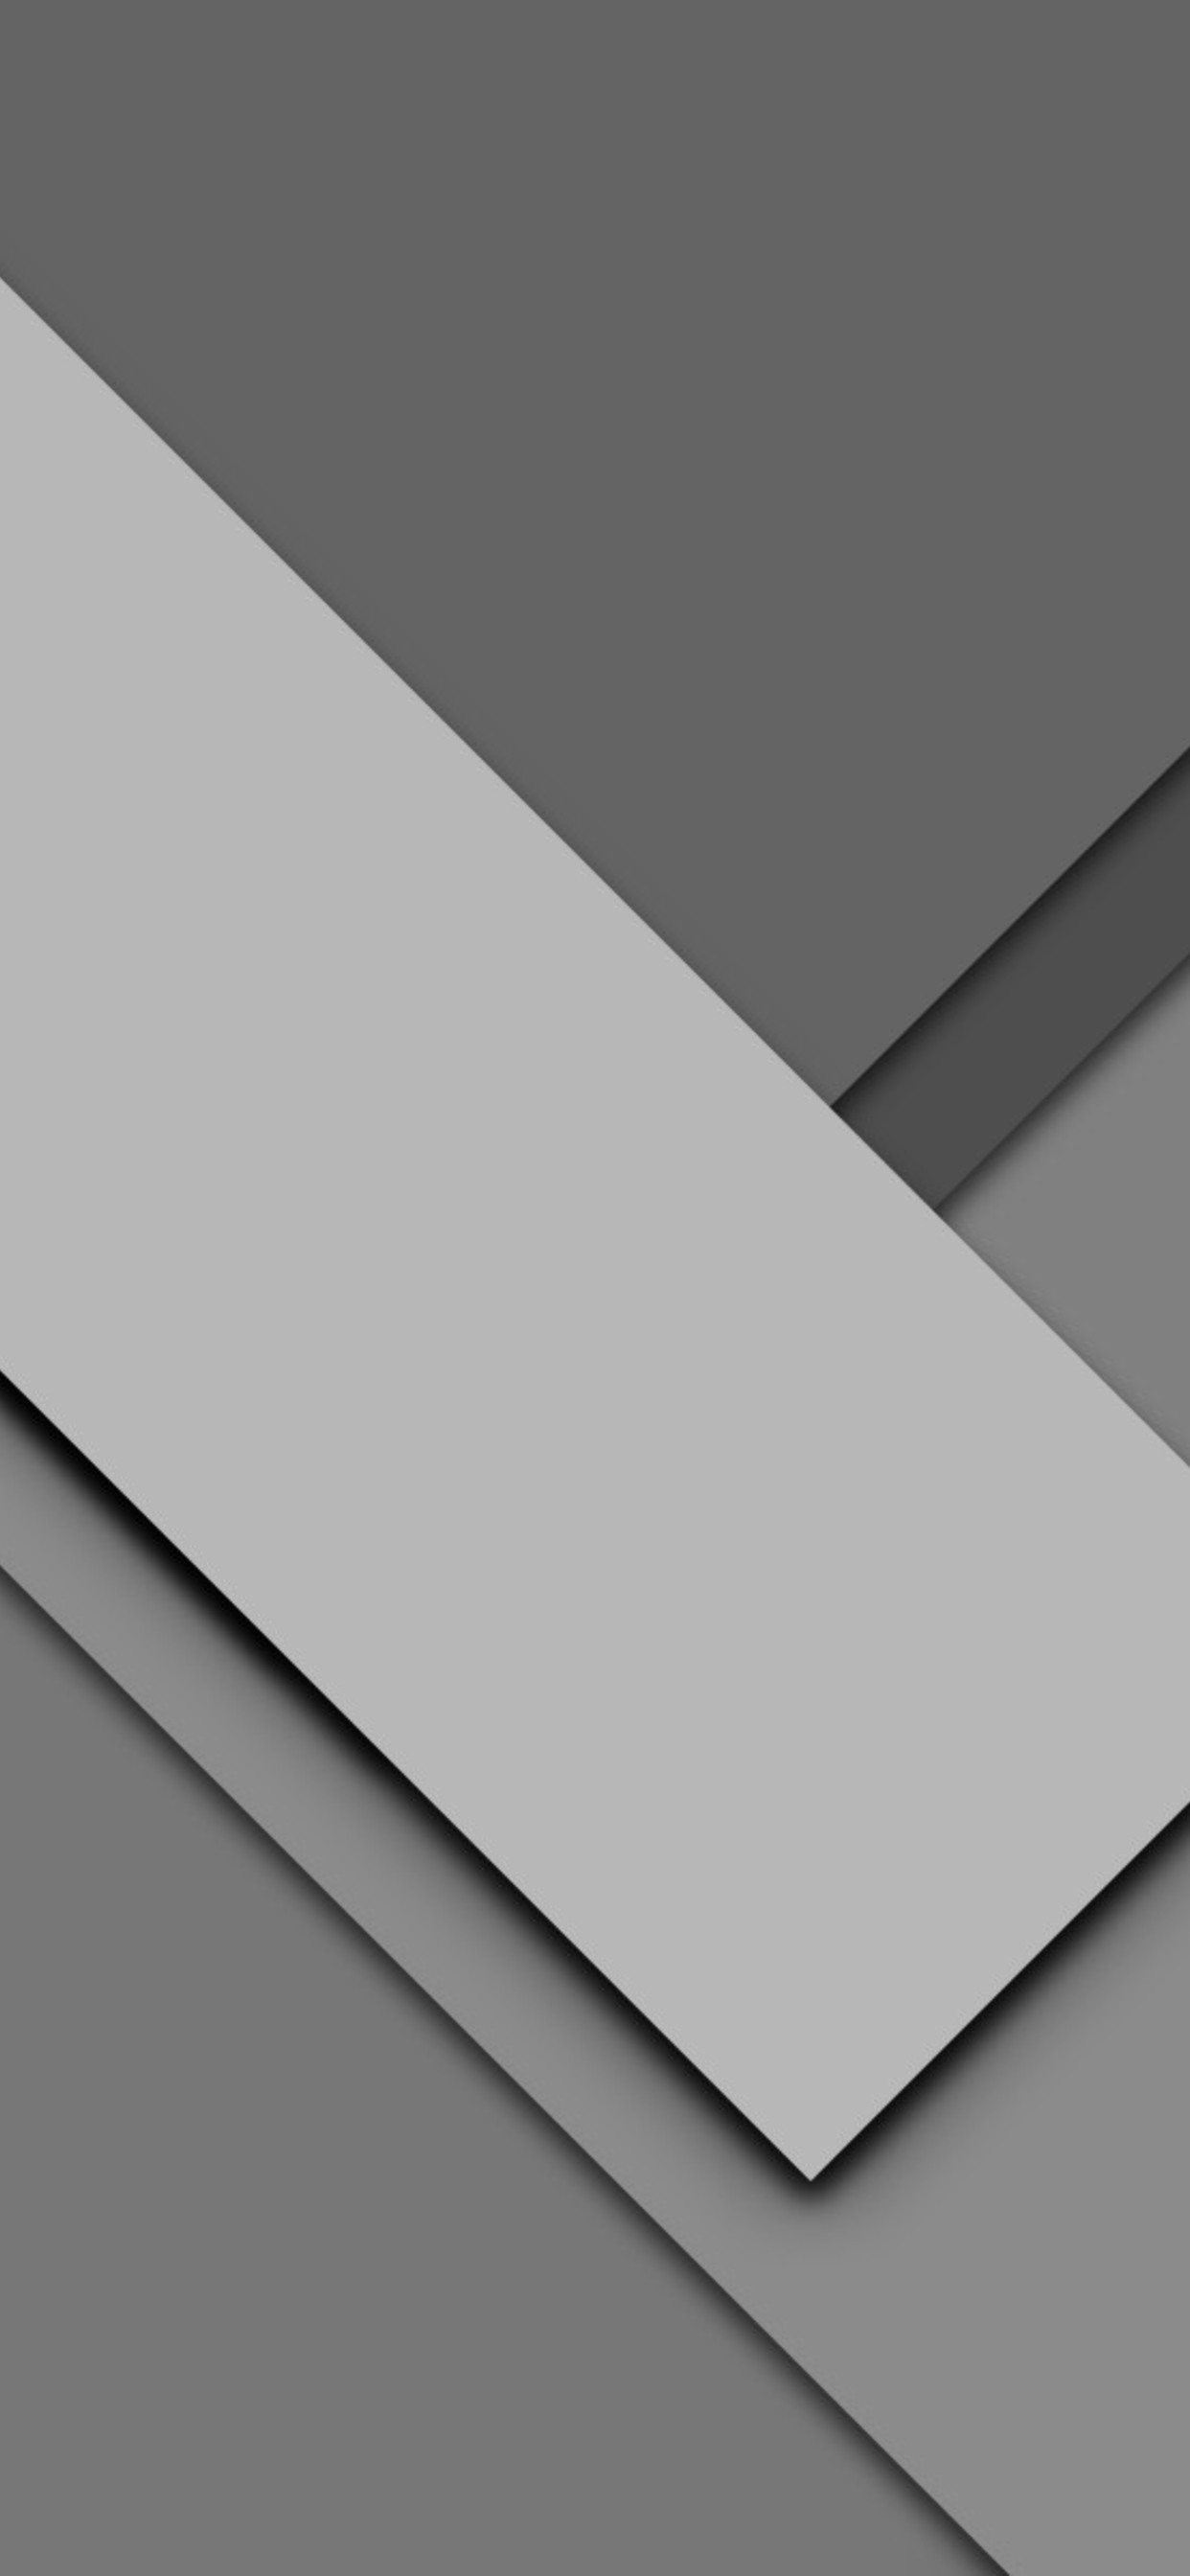 1242x2688 Material Design Grey Iphone Xs Max Hd 4k